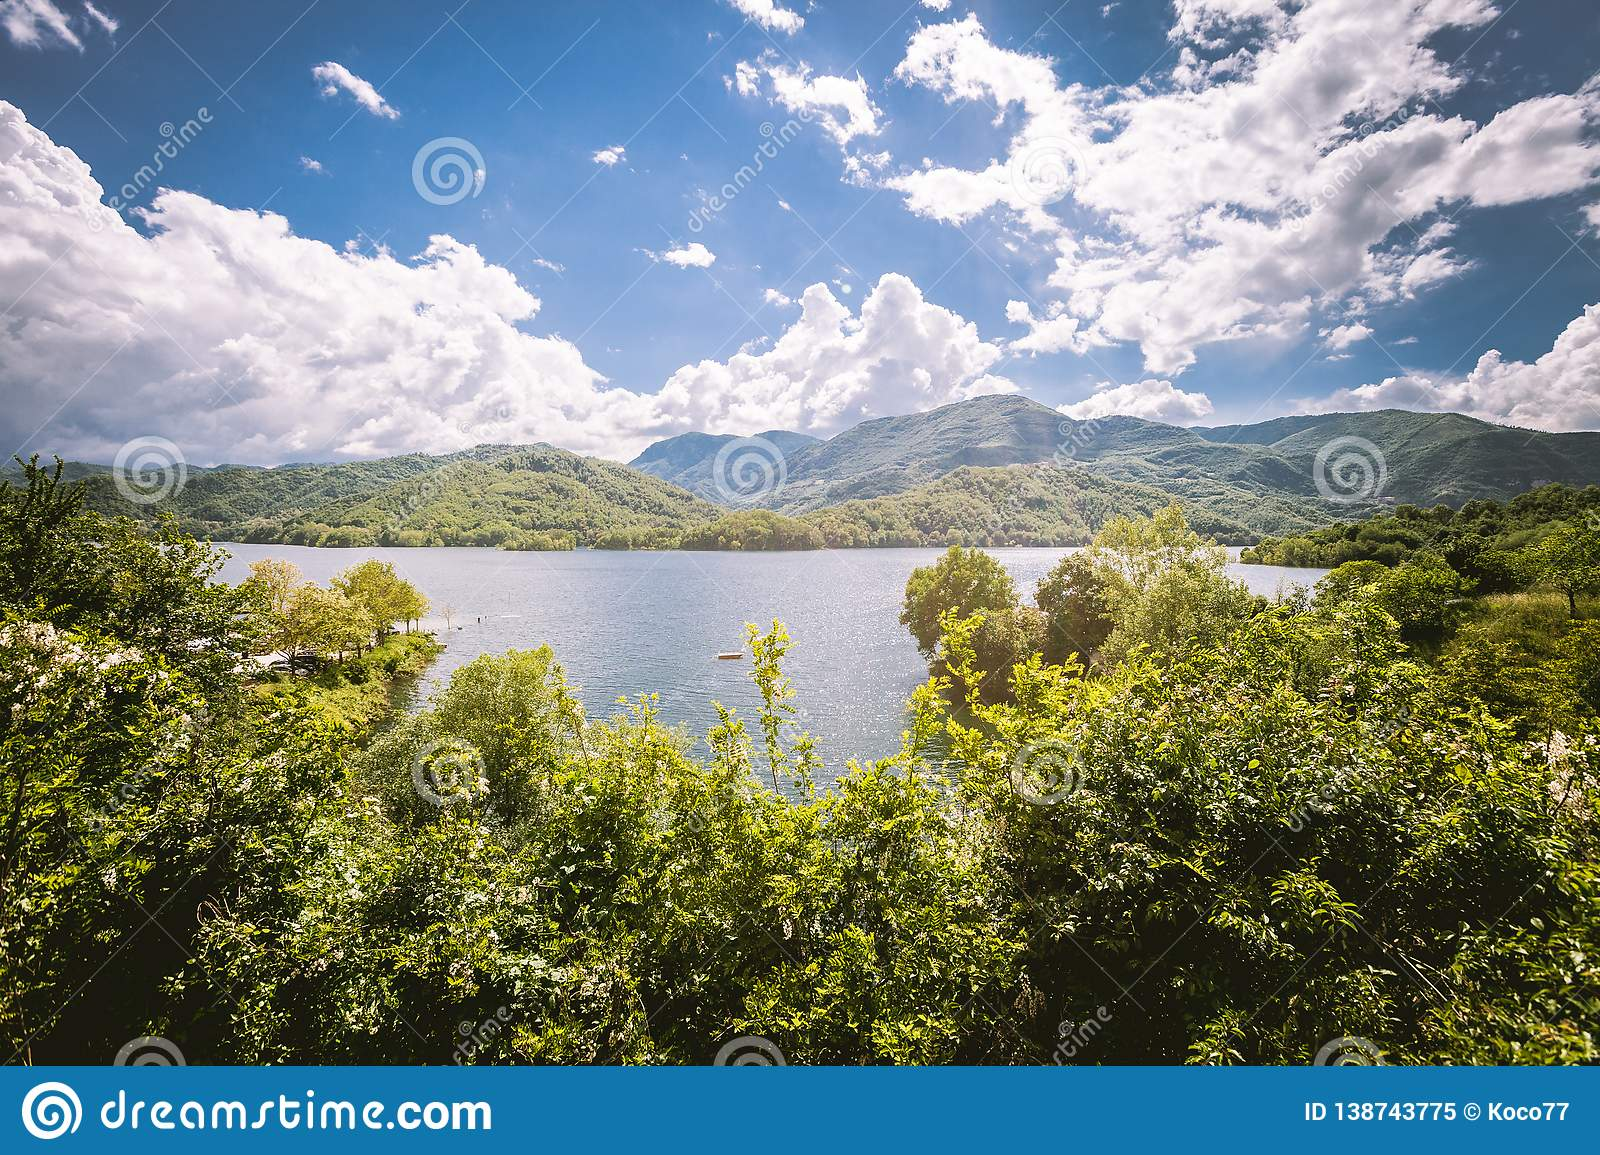 Panorama of a lake with green vegetation around. Natural basin with forest and mountains.